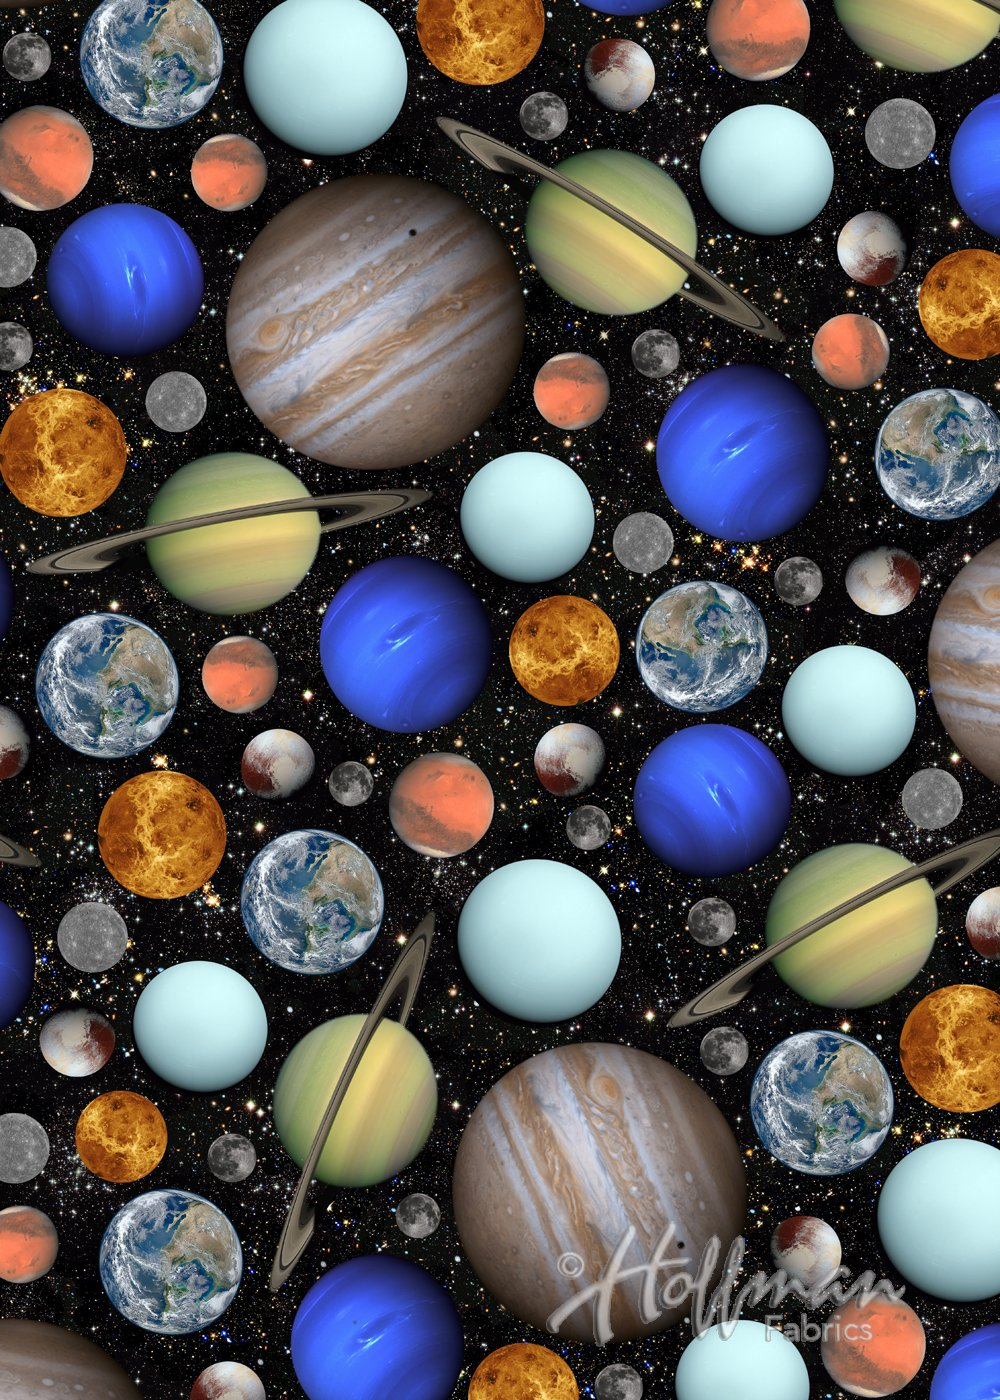 Q4410-549-Celestials Out of this World